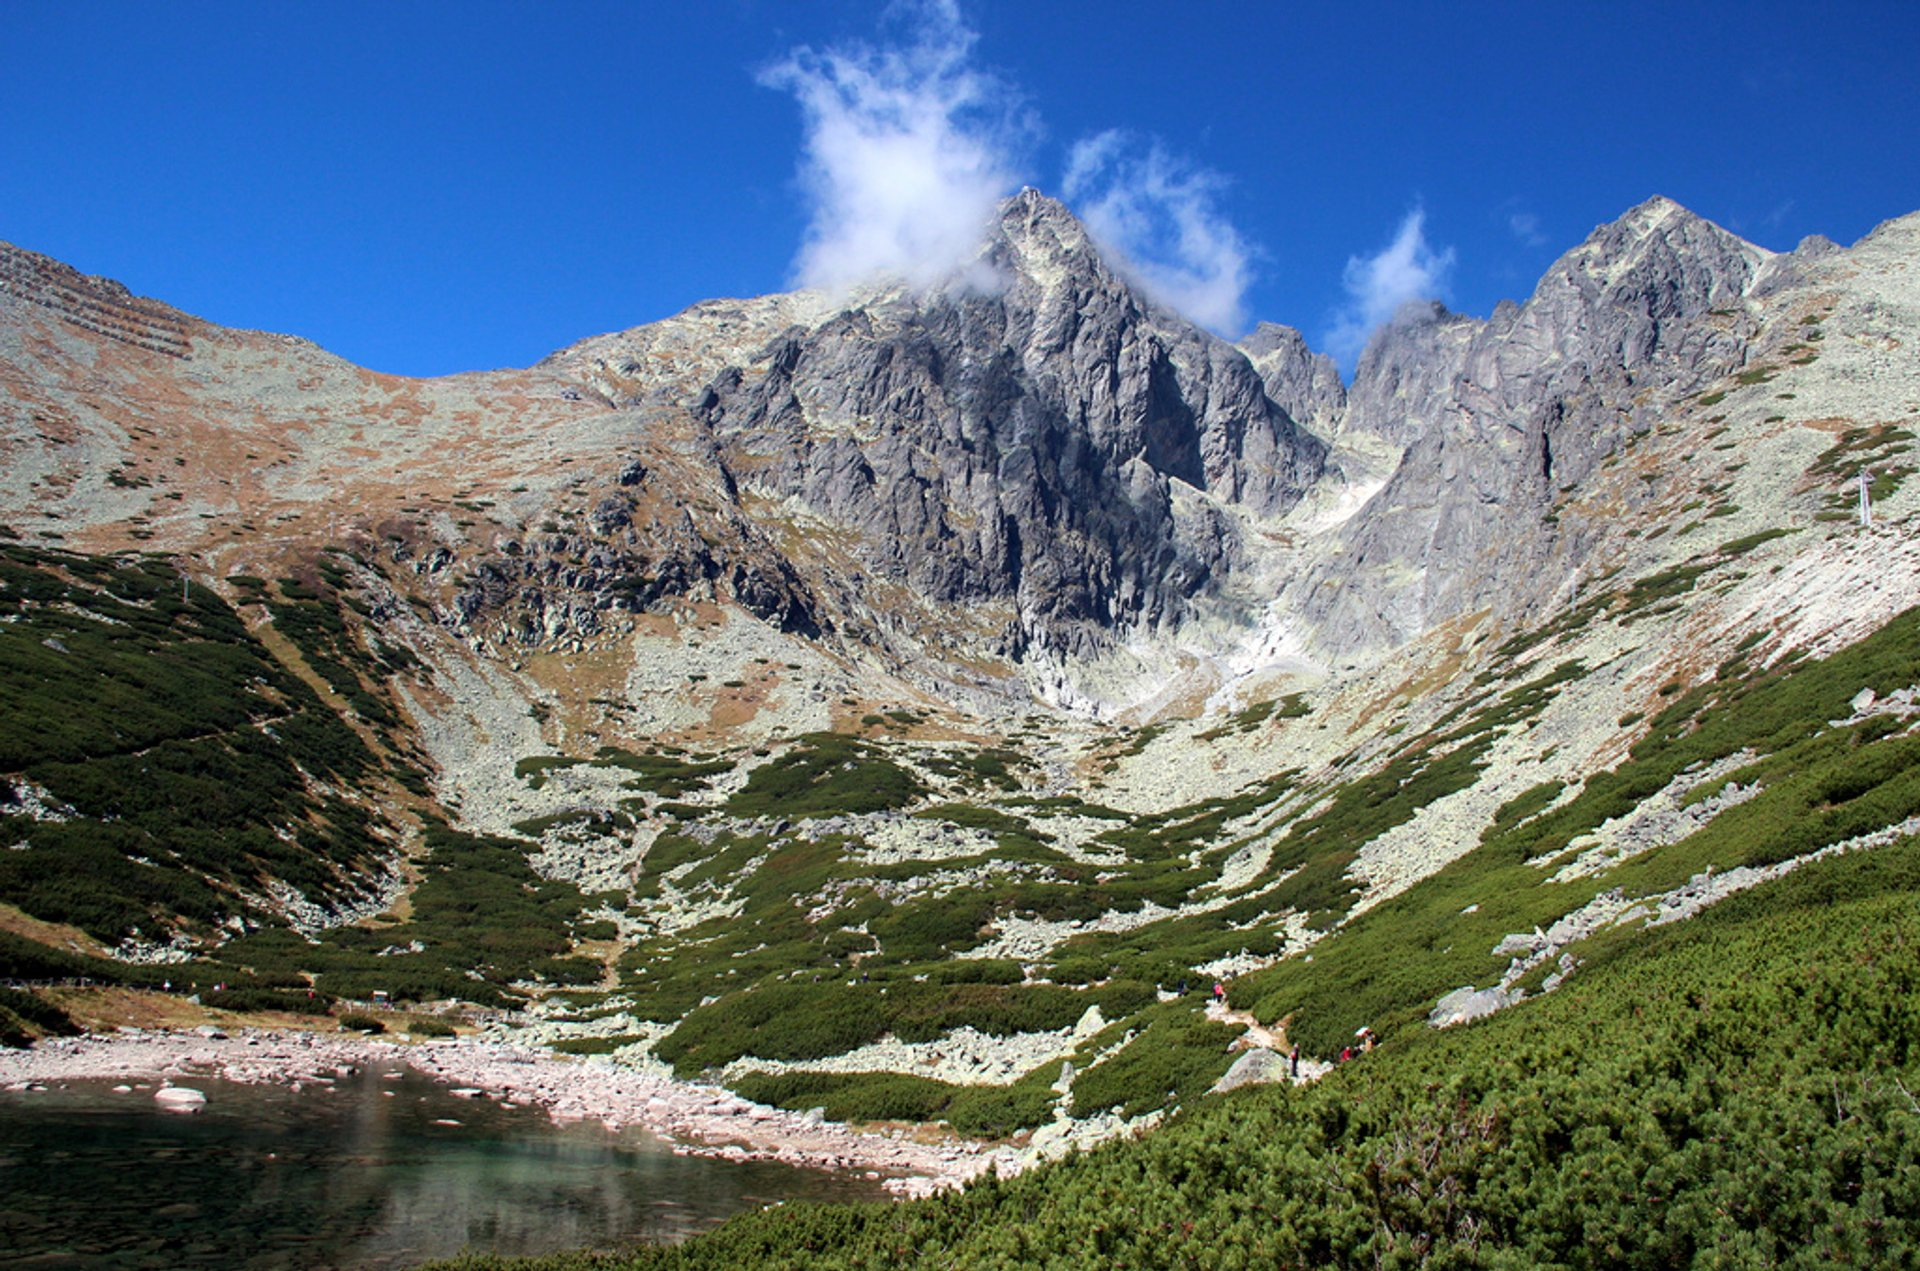 Best time for Hiking in the Tatra Mountains 2020